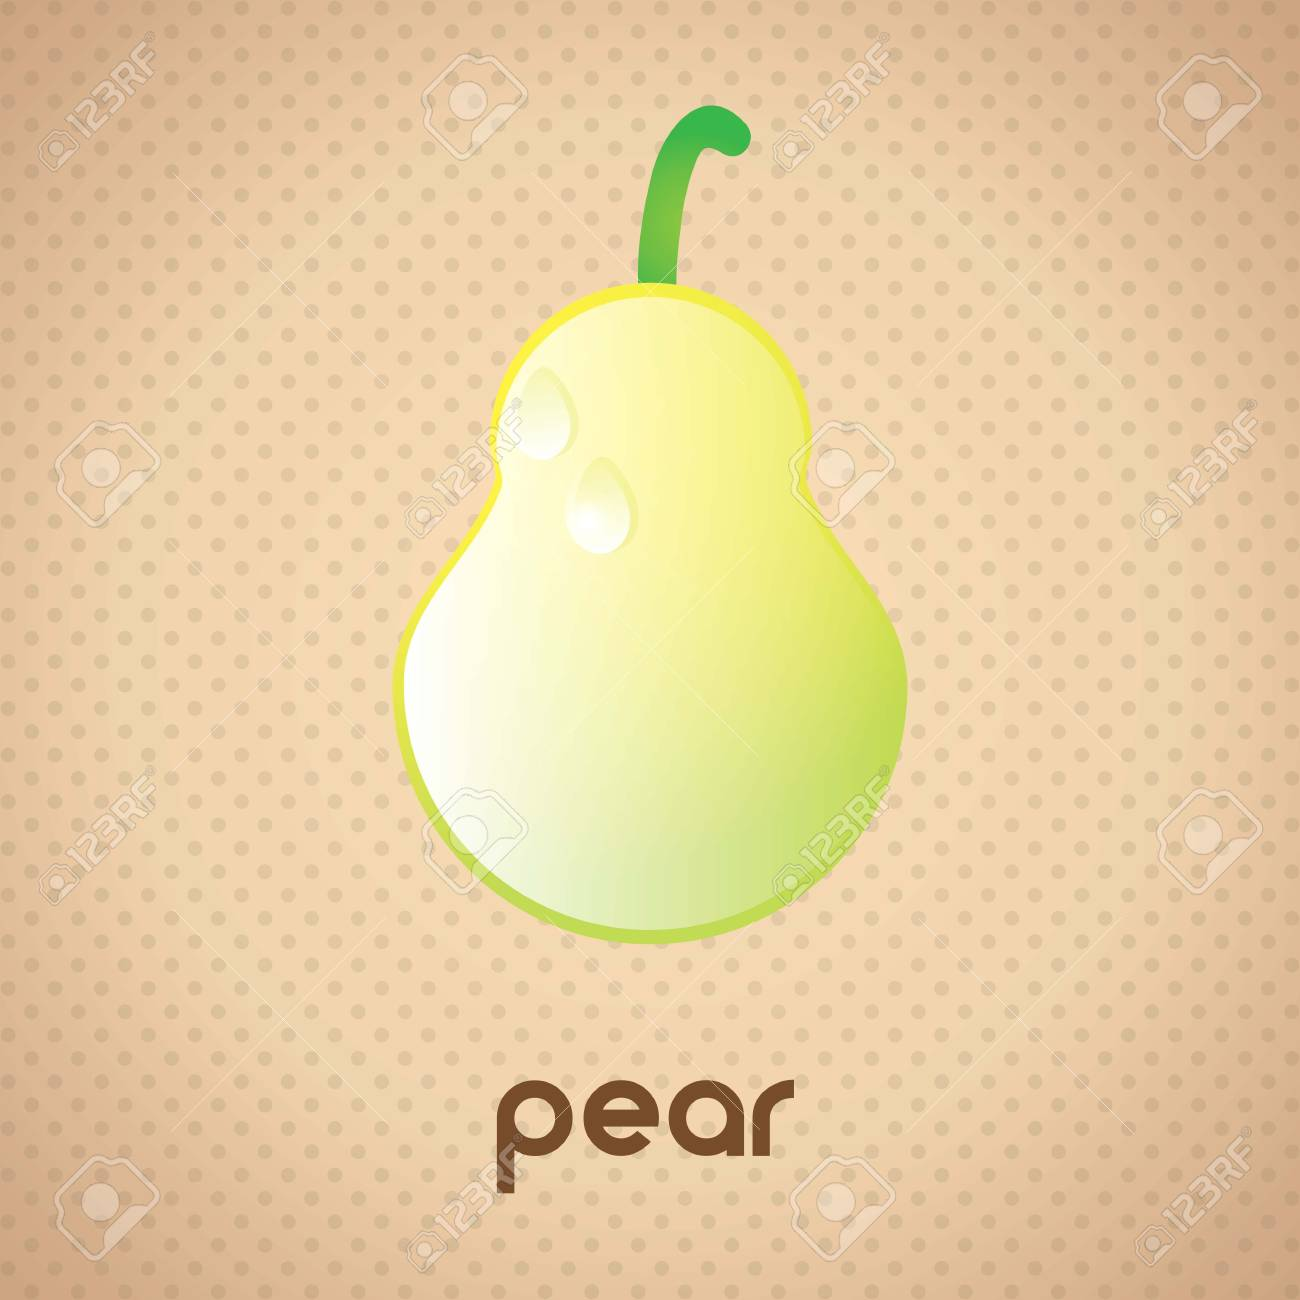 Pear Glossy fruit with raindrops, on vintage background Stock Vector - 17349167